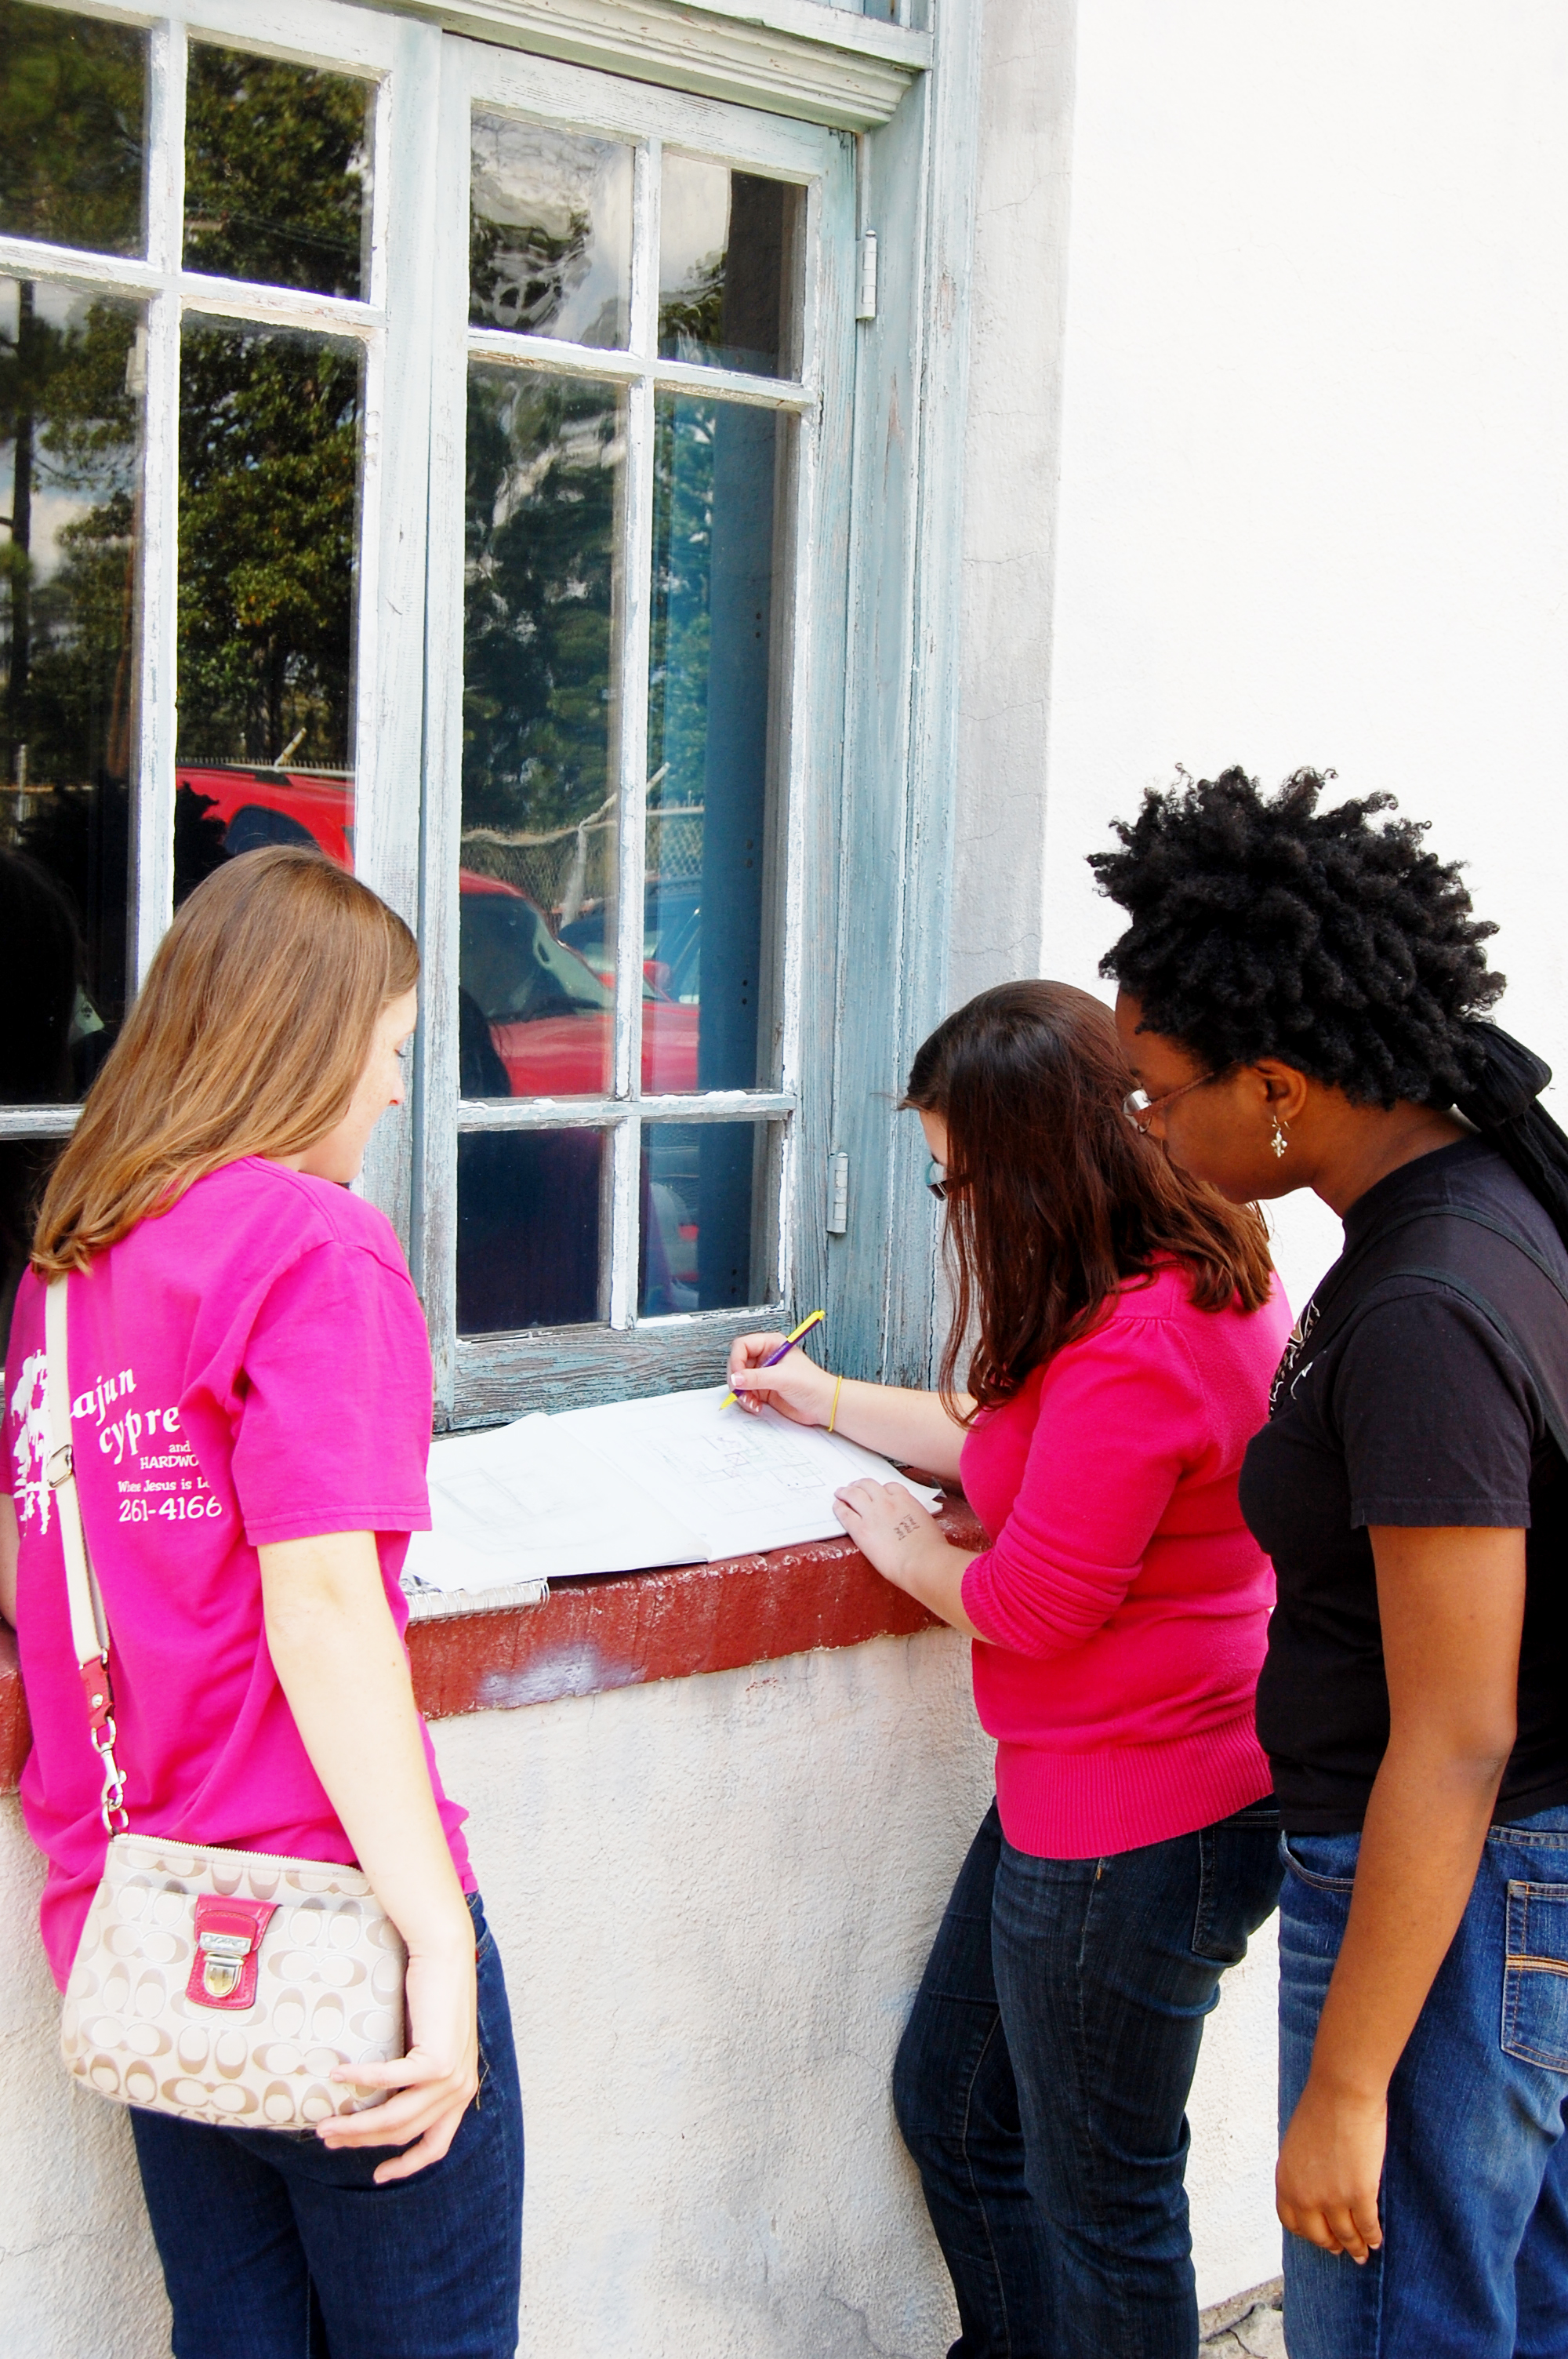 LSU Architecture students surveying the building and site